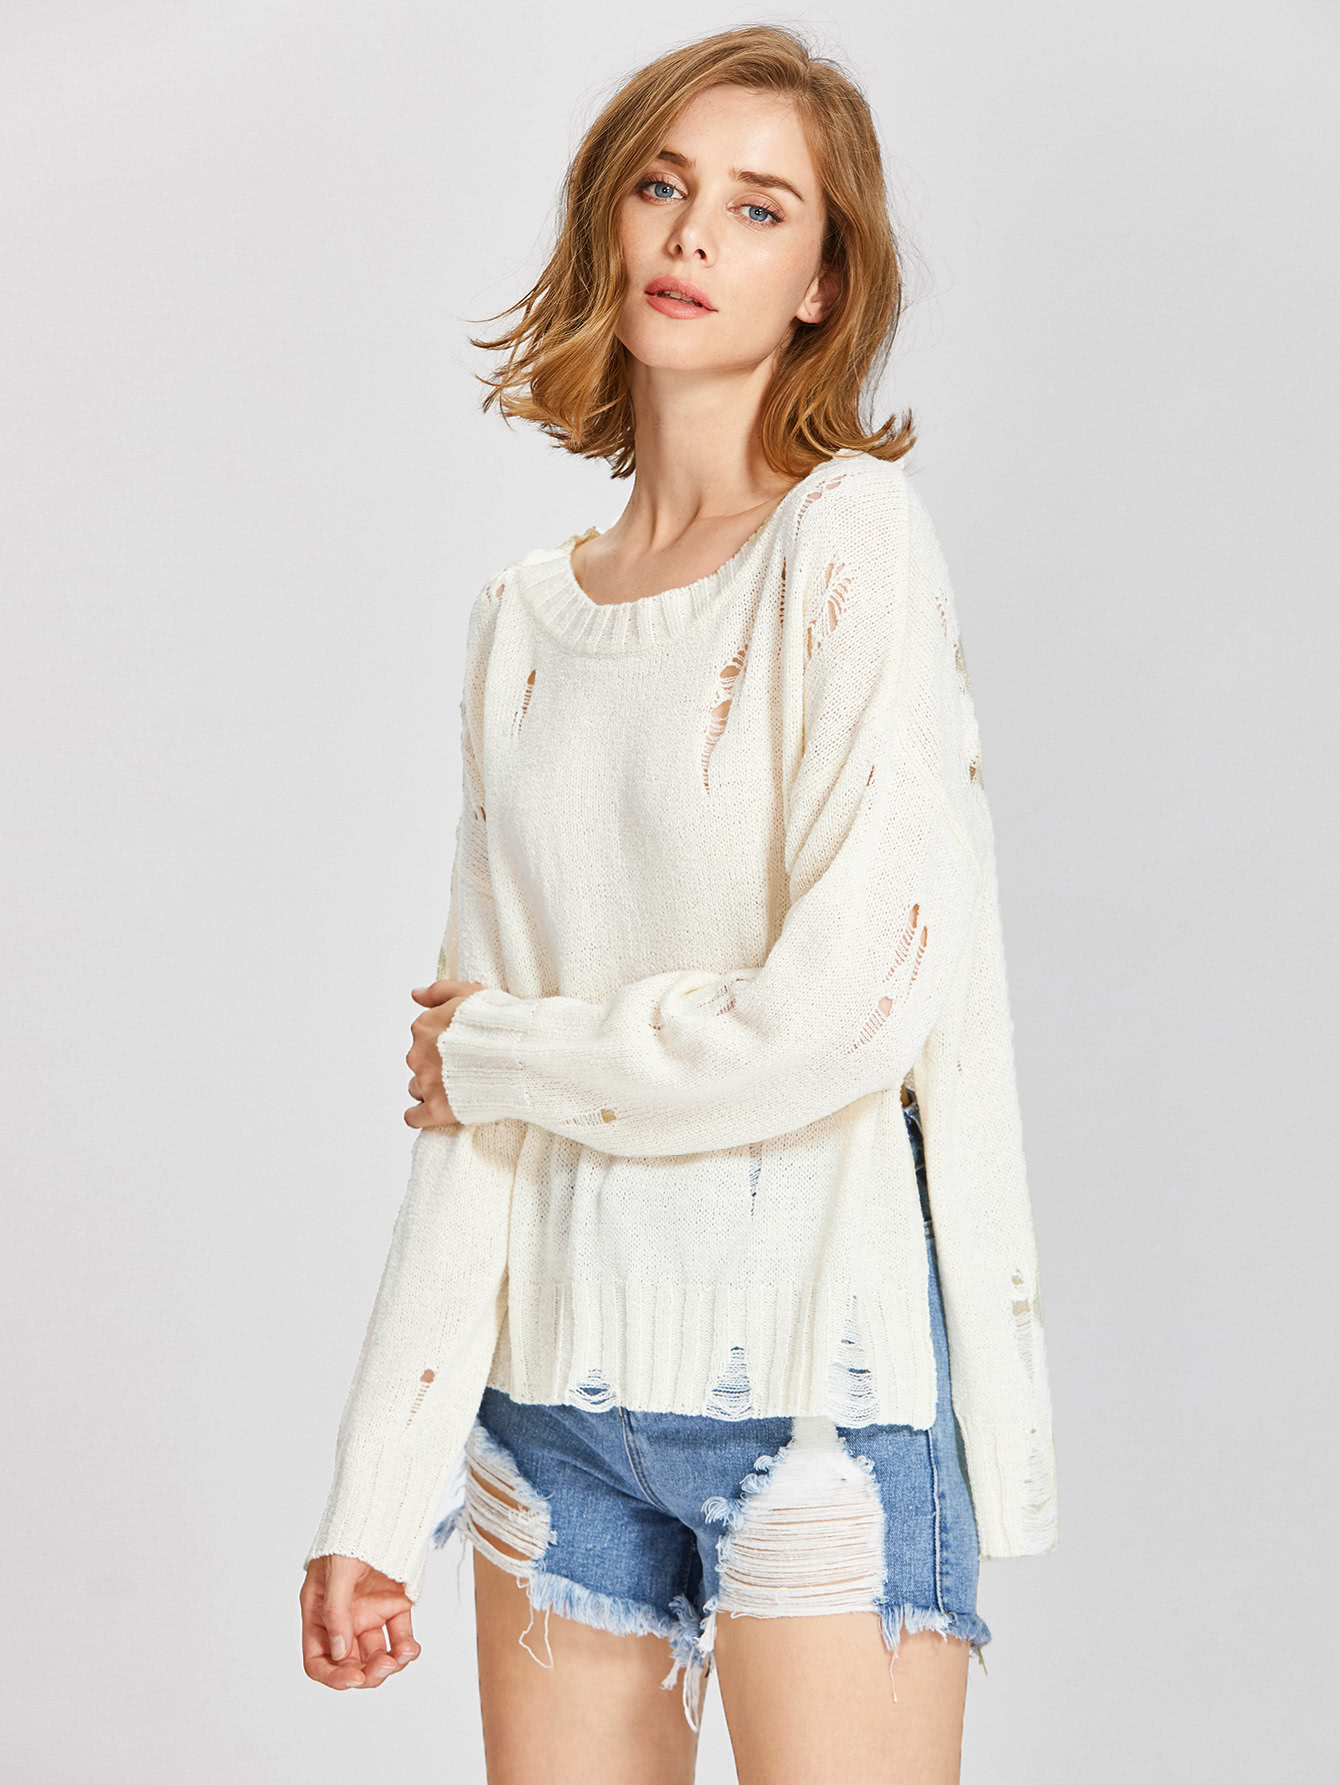 Slit Stepped Hem Destroyed Jumper sweater170704457